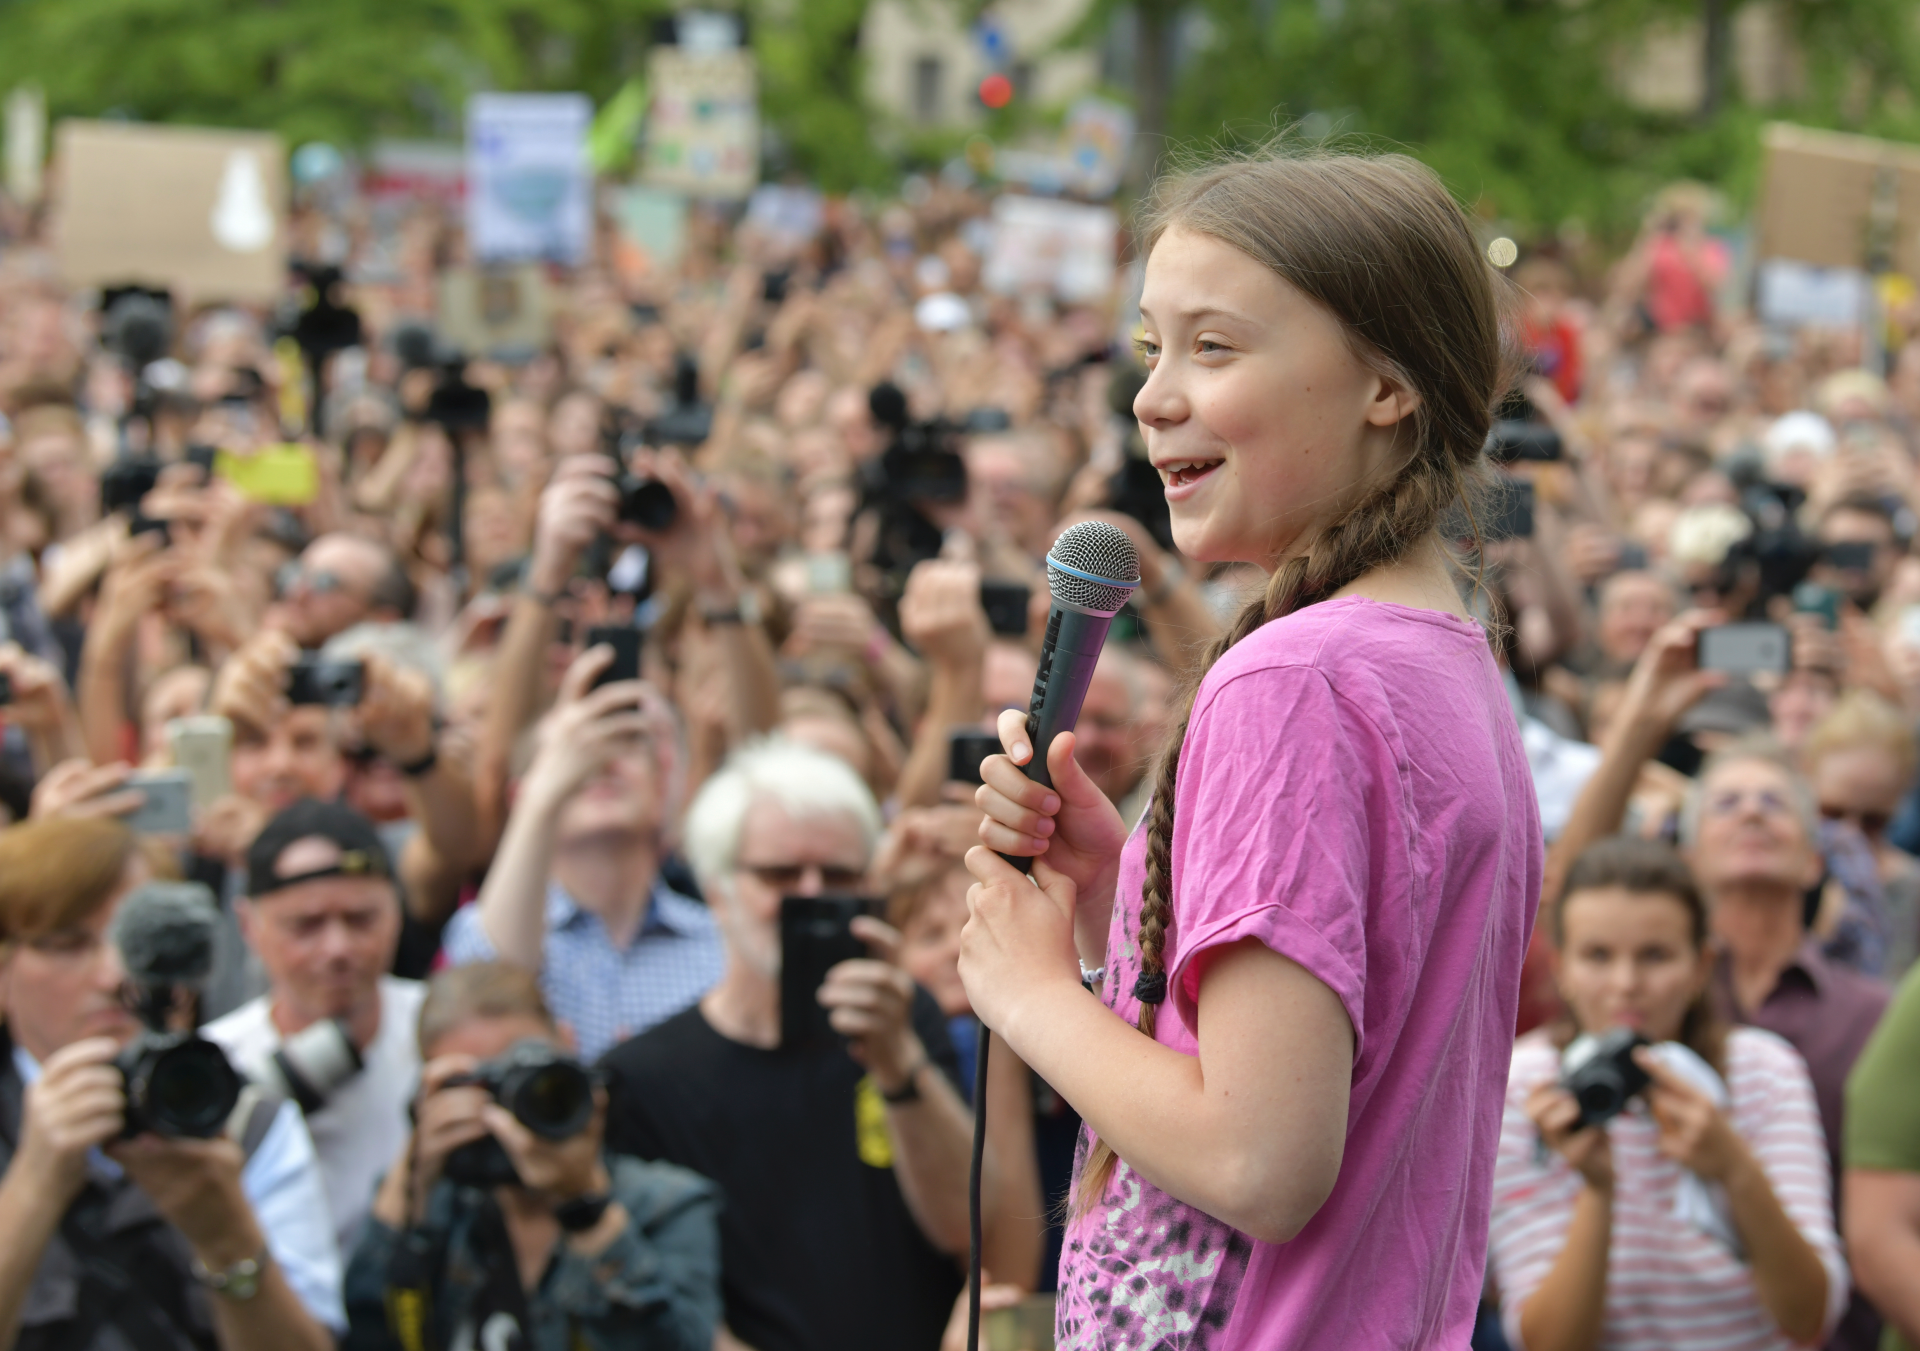 Westlake Legal Group ContentBroker_contentid-9cf5342a326c406e8bba32d9ec78818d Teen climate activist Greta Thunberg mural in Canada vandalized fox-news/world/world-regions/canada fox-news/world/environment/climate-change fox-news/politics/regulation/environment fox news fnc/world fnc Danielle Wallace article 28a62d40-0456-5eed-942f-fd33e77ffdff